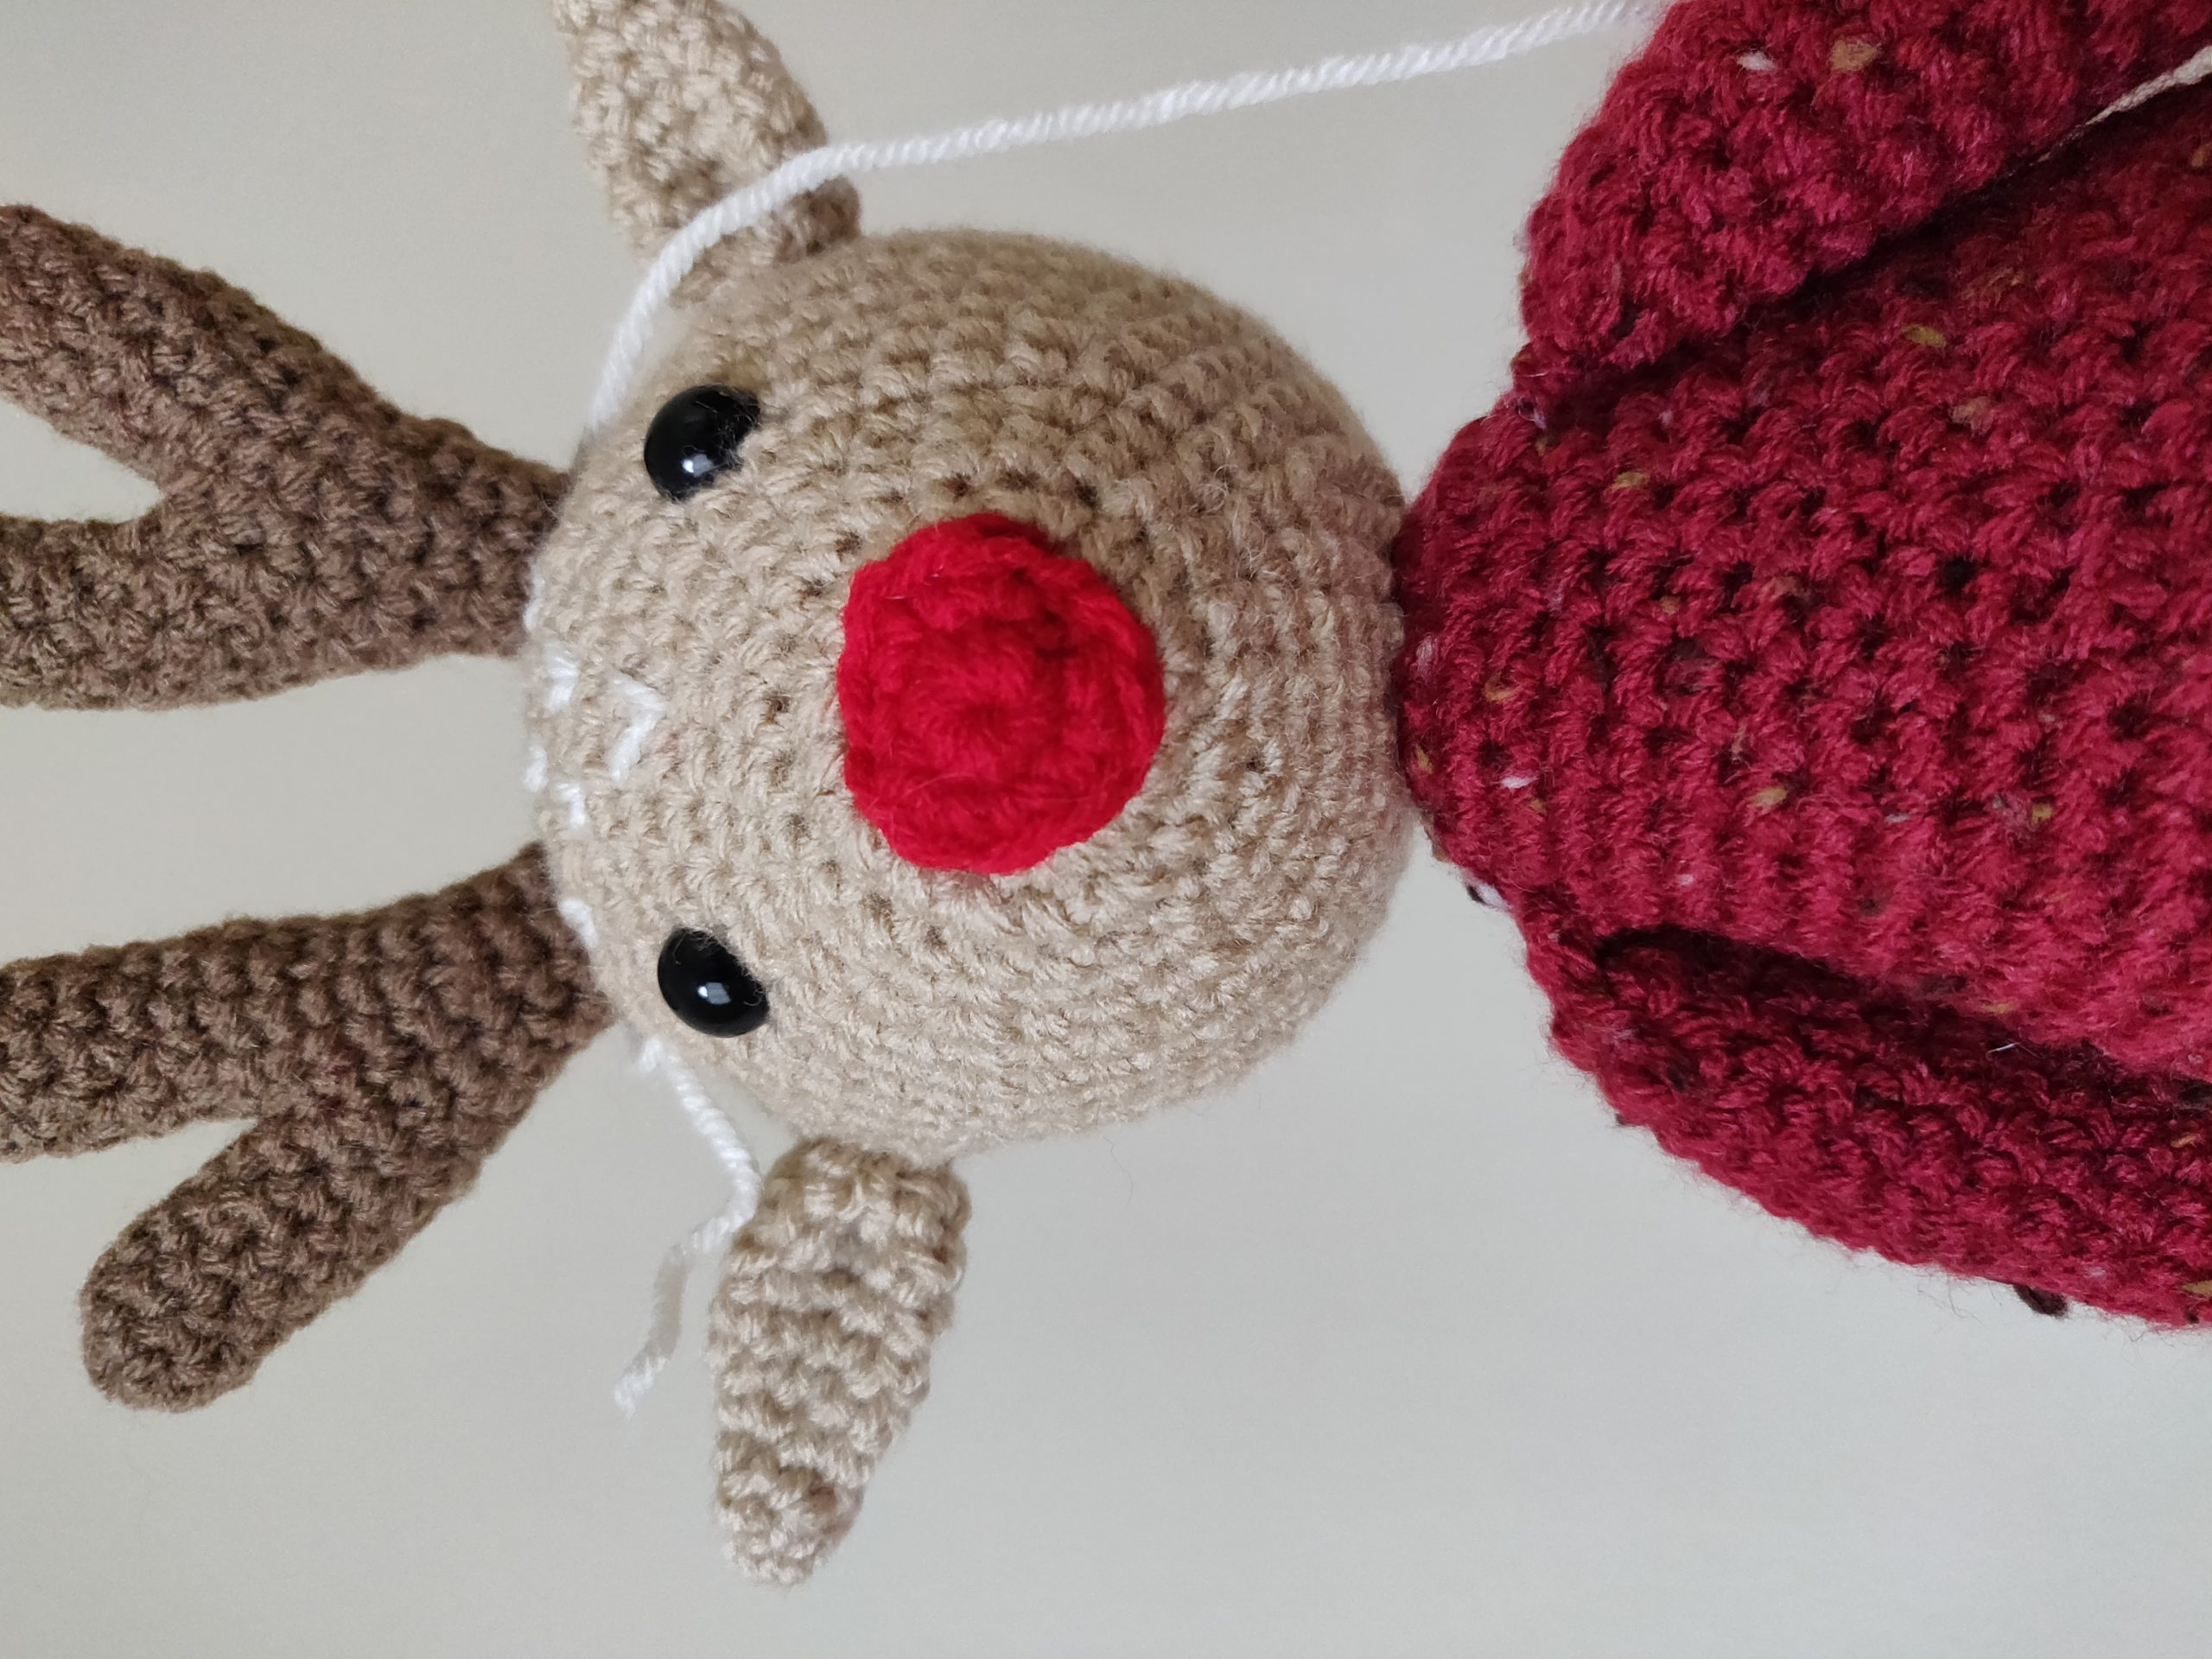 Crochet reindeer with dark red sweater and cherry red nose.